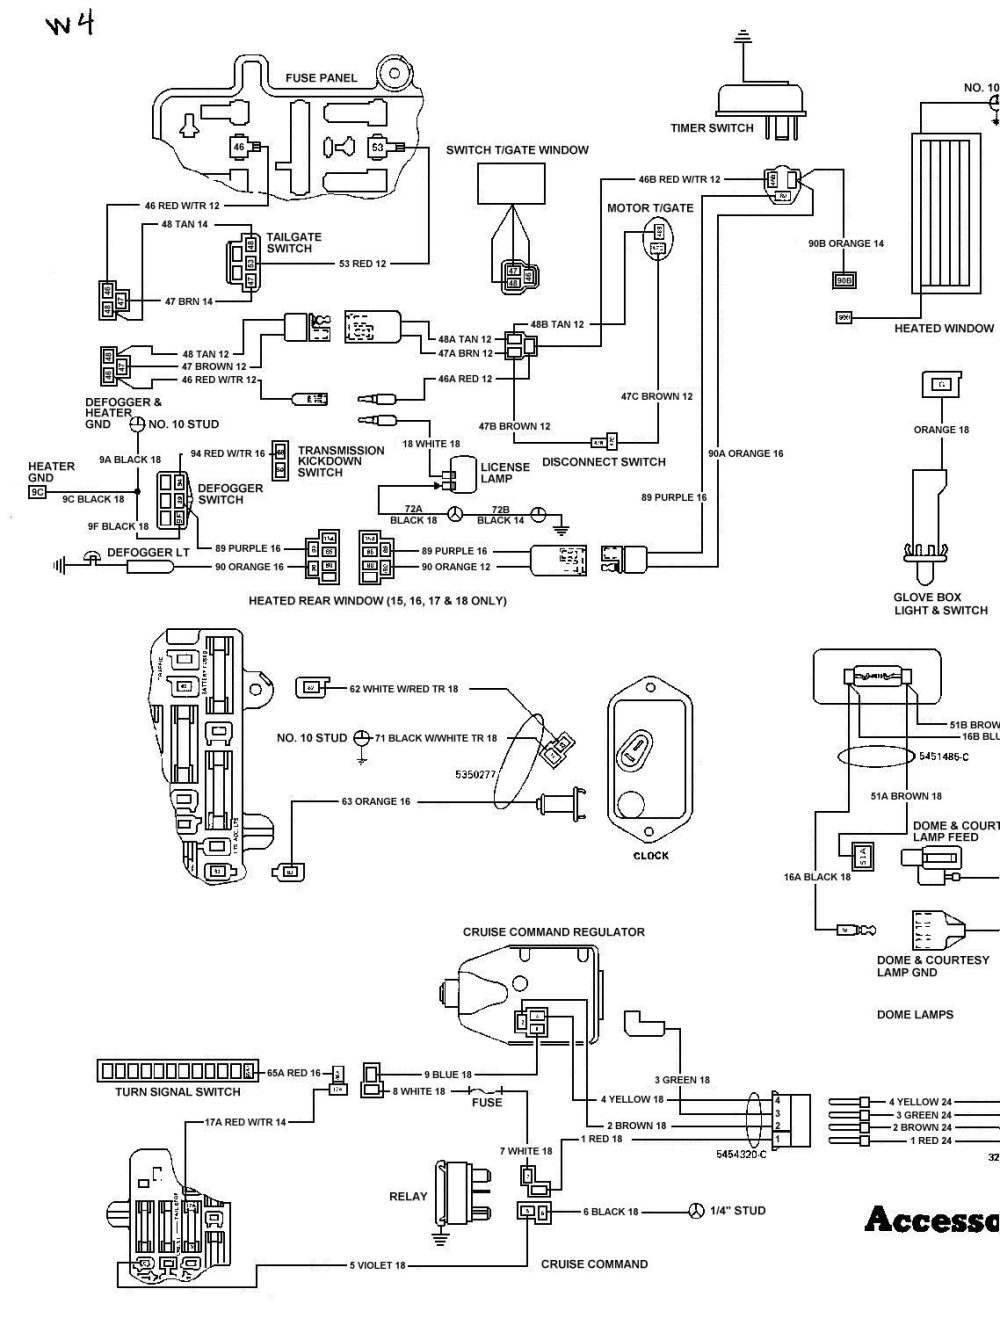 medium resolution of 85 jeep cj7 wiring diagram wiring diagram 85 jeep cj7 wiring diagram